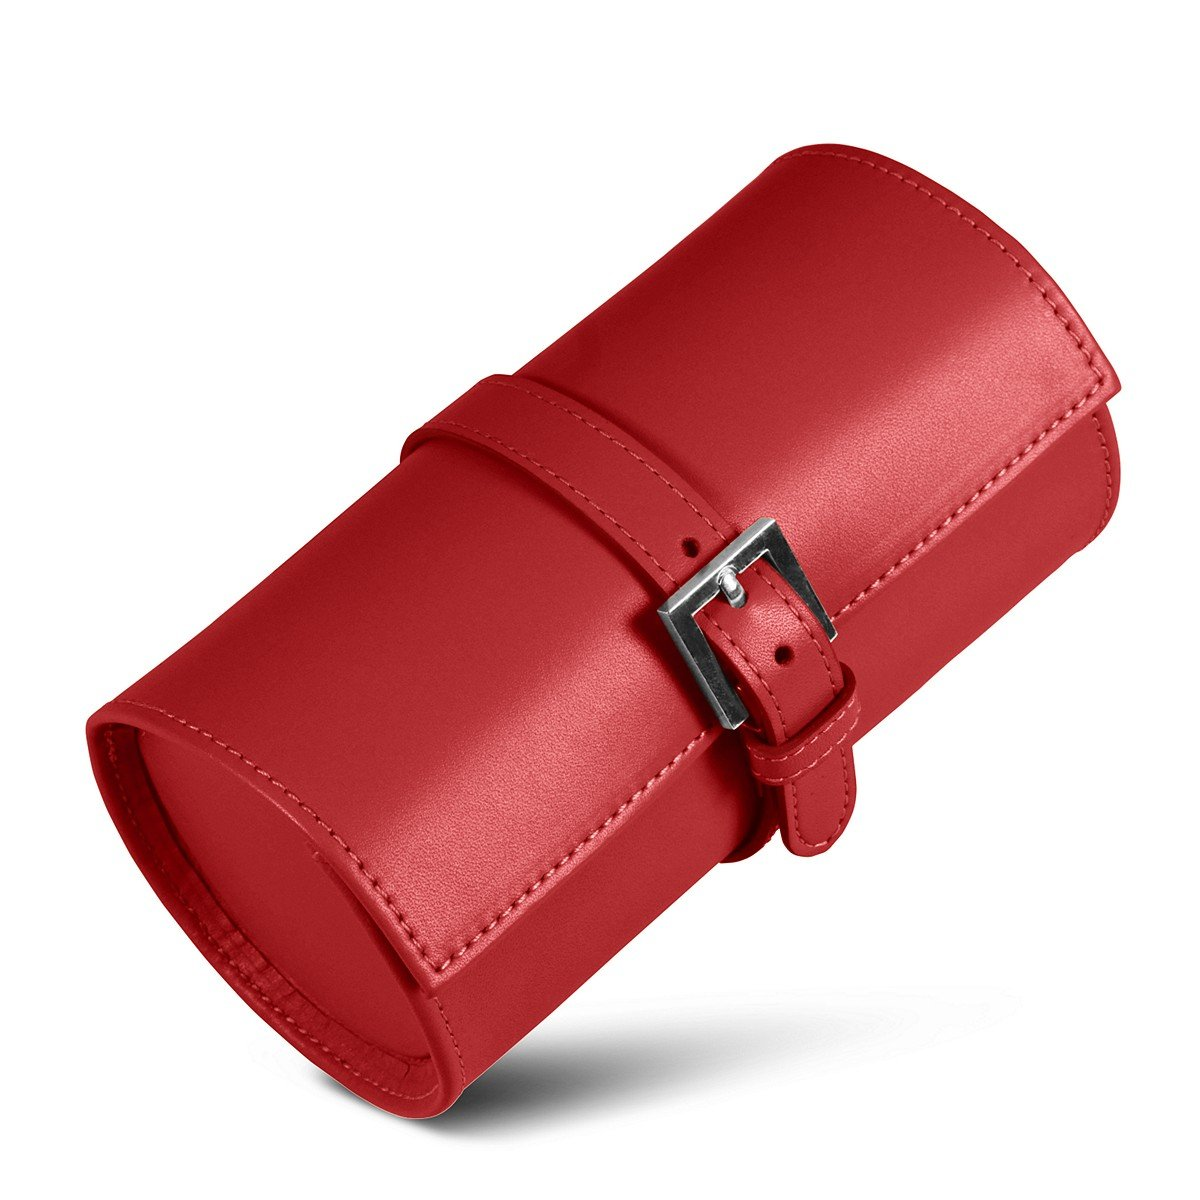 Lucrin - Round watches holder - Red - Smooth Leather